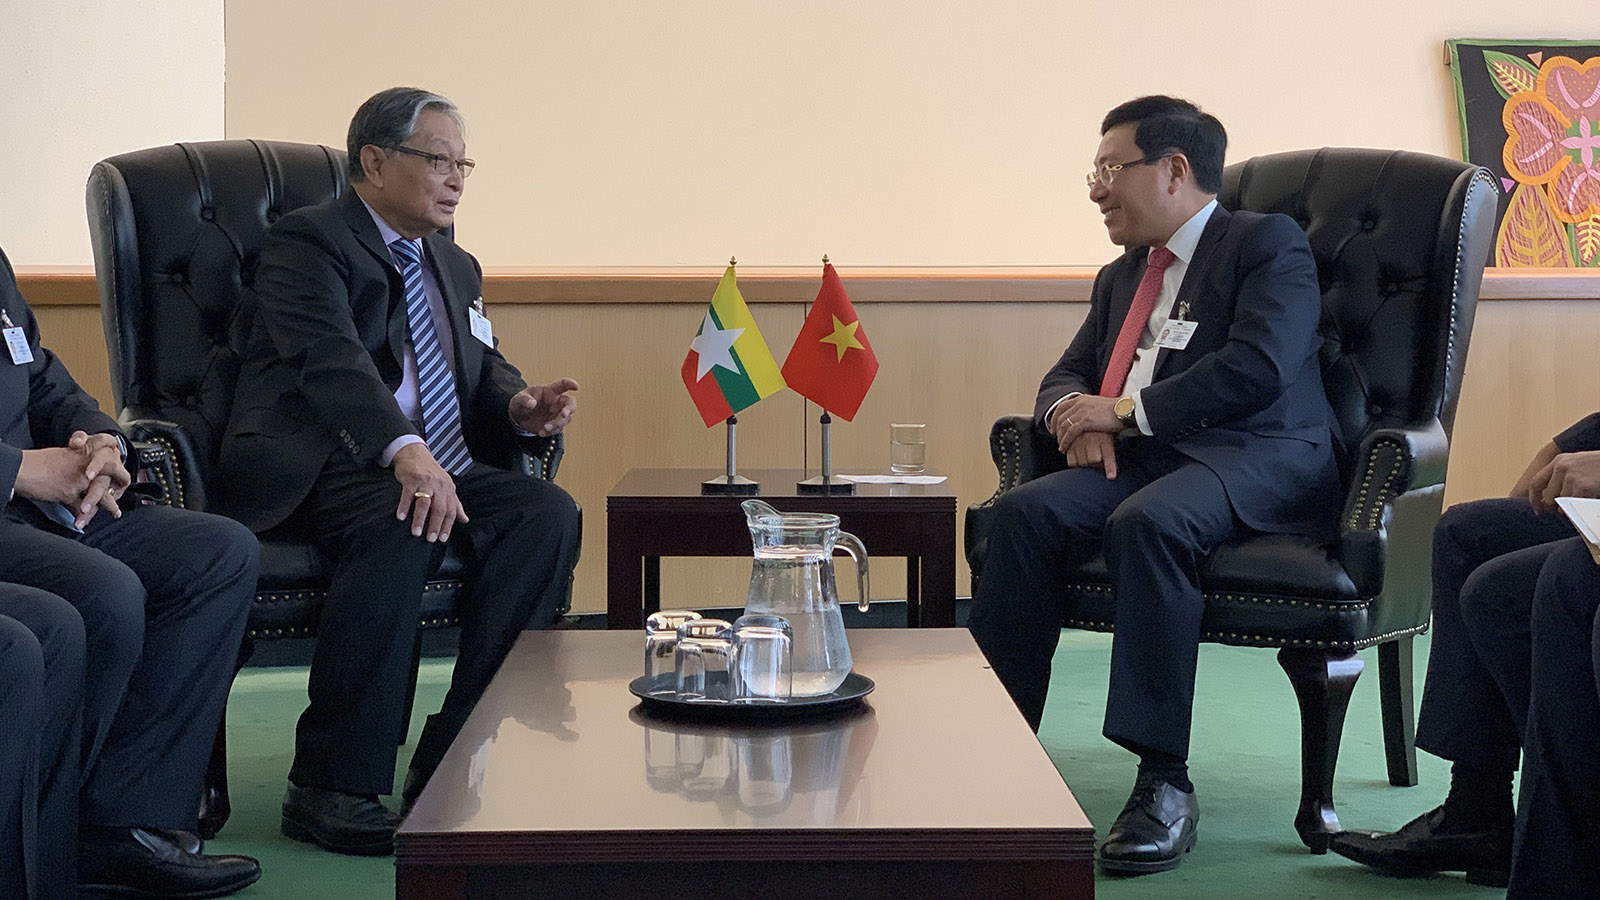 Union Minister U Kyaw Tint Swe (L) meets with Deputy Prime Minister and Foreign Minister of Viet Nam Mr. Pham Binh Minh on 27 September.Photo: MNA